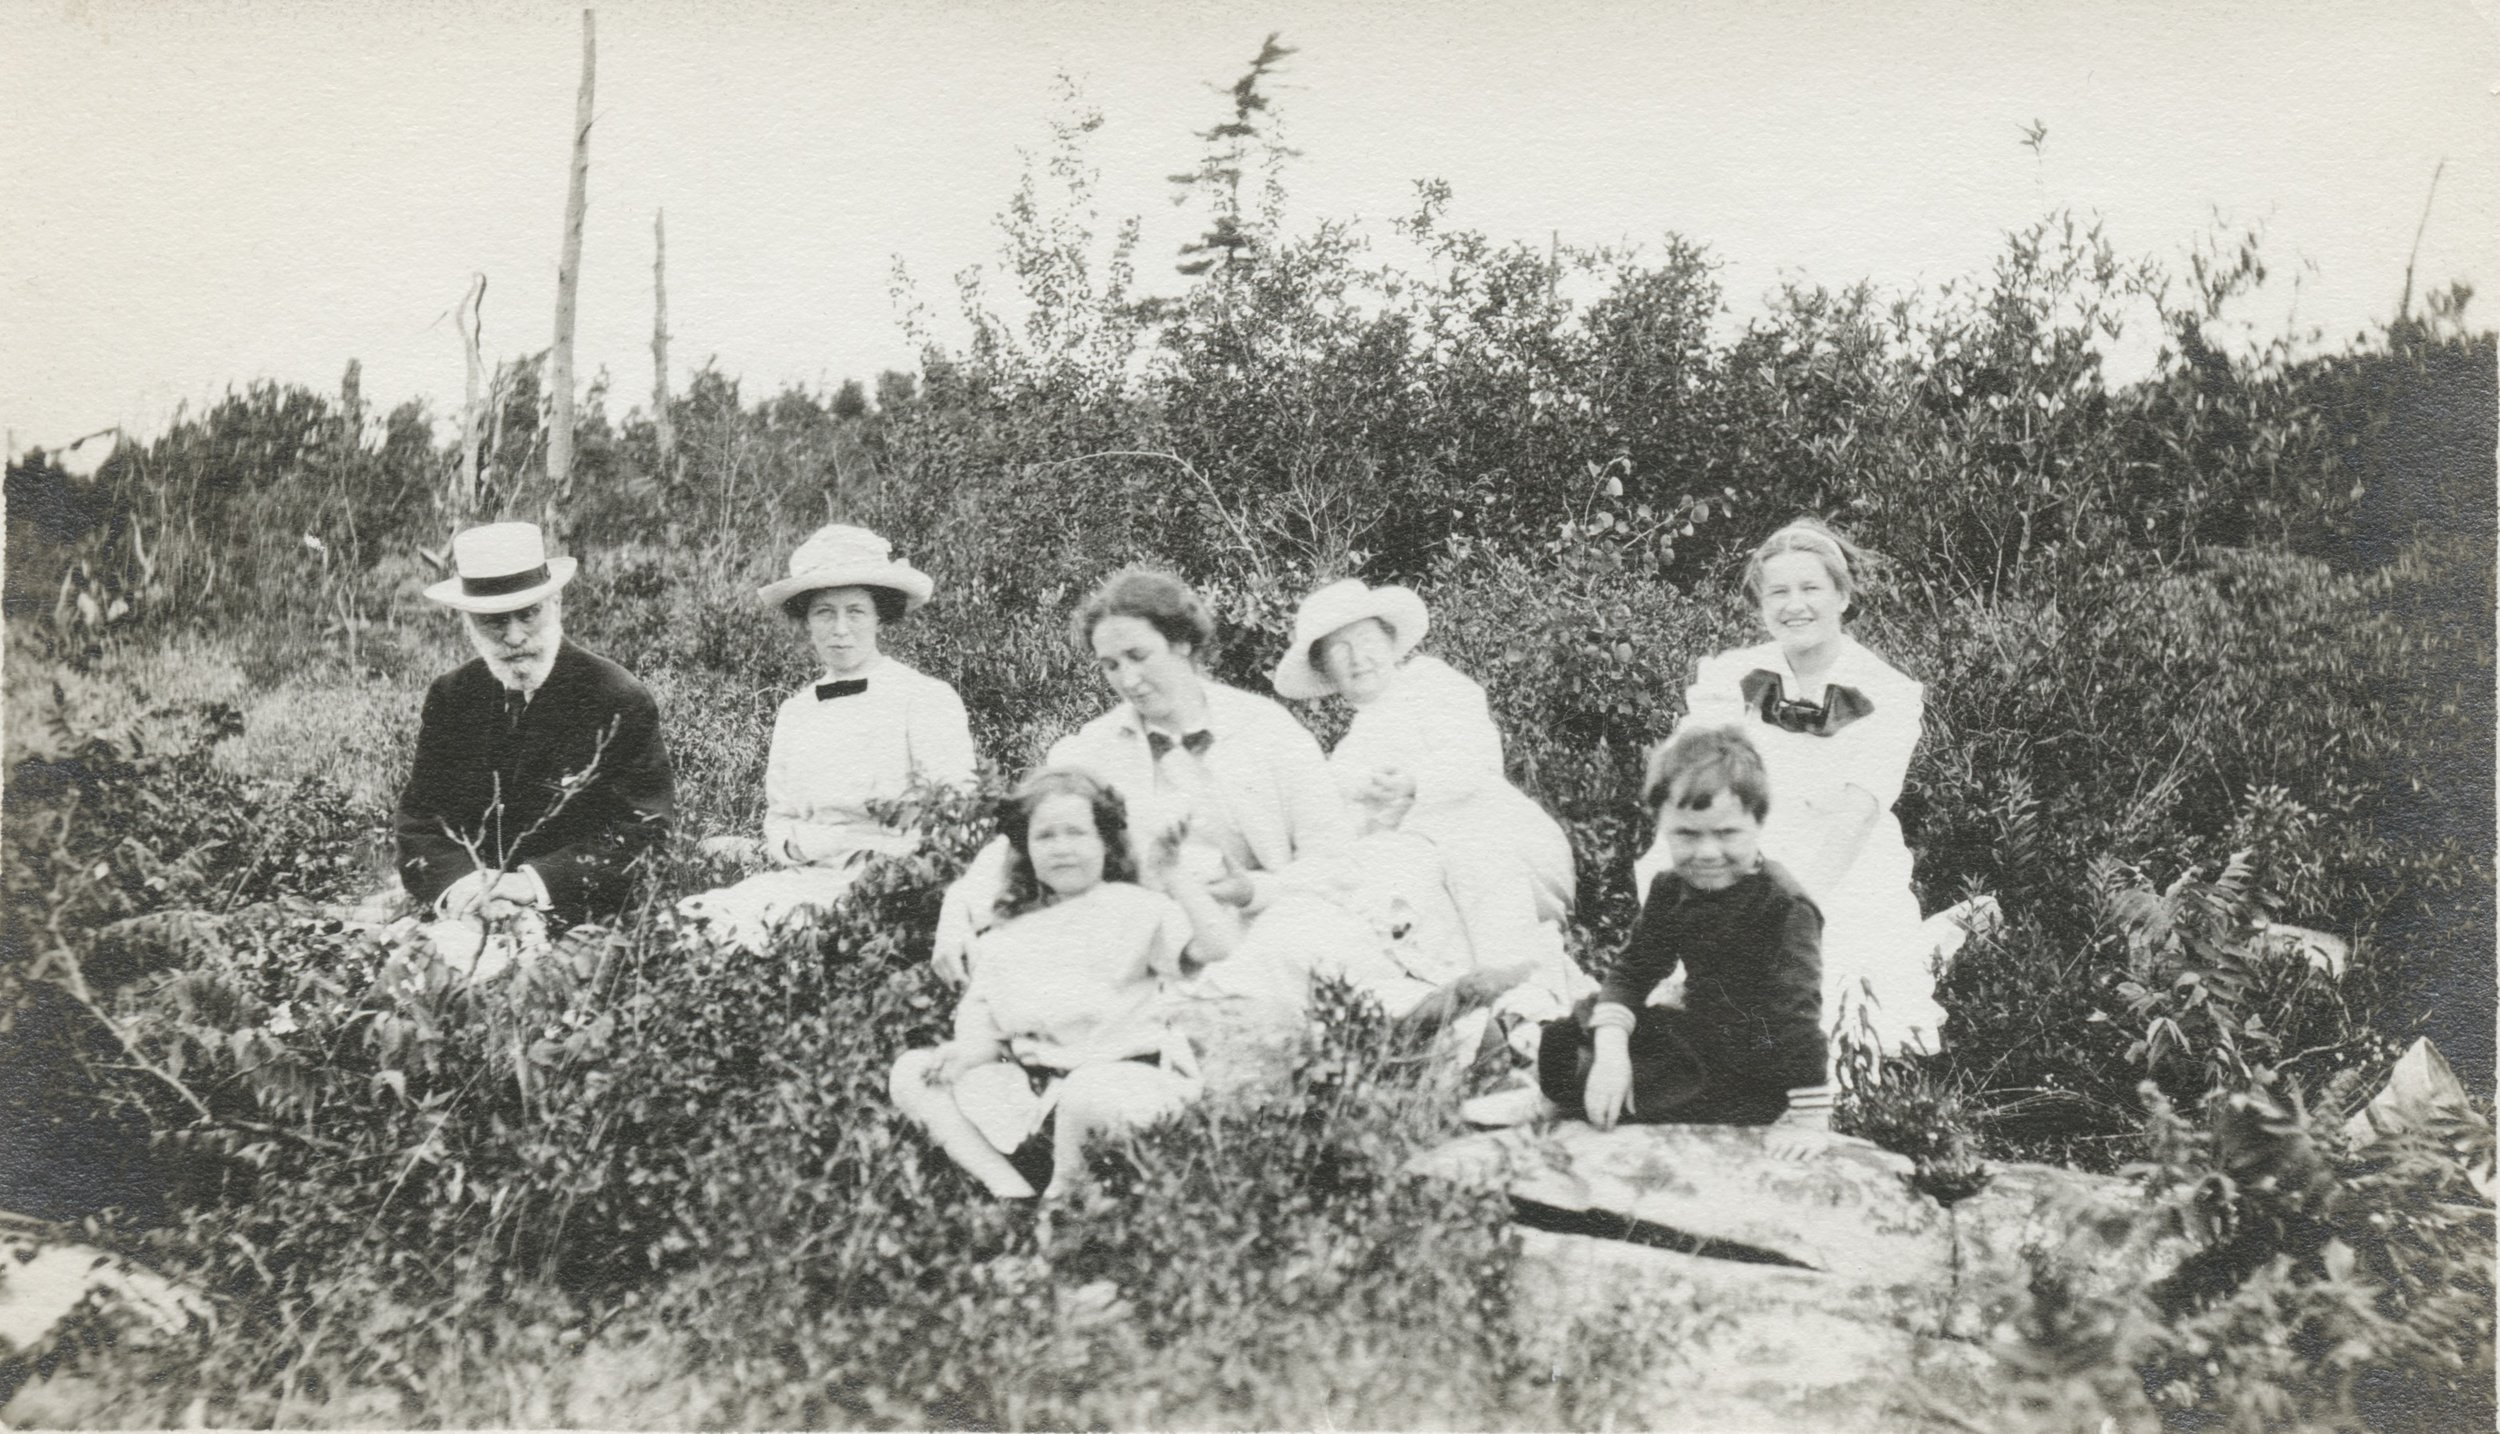 1920's Ojibway picnic HPK centre RBK Mr. Clifford Mordon on left (from Hamilton).jpeg